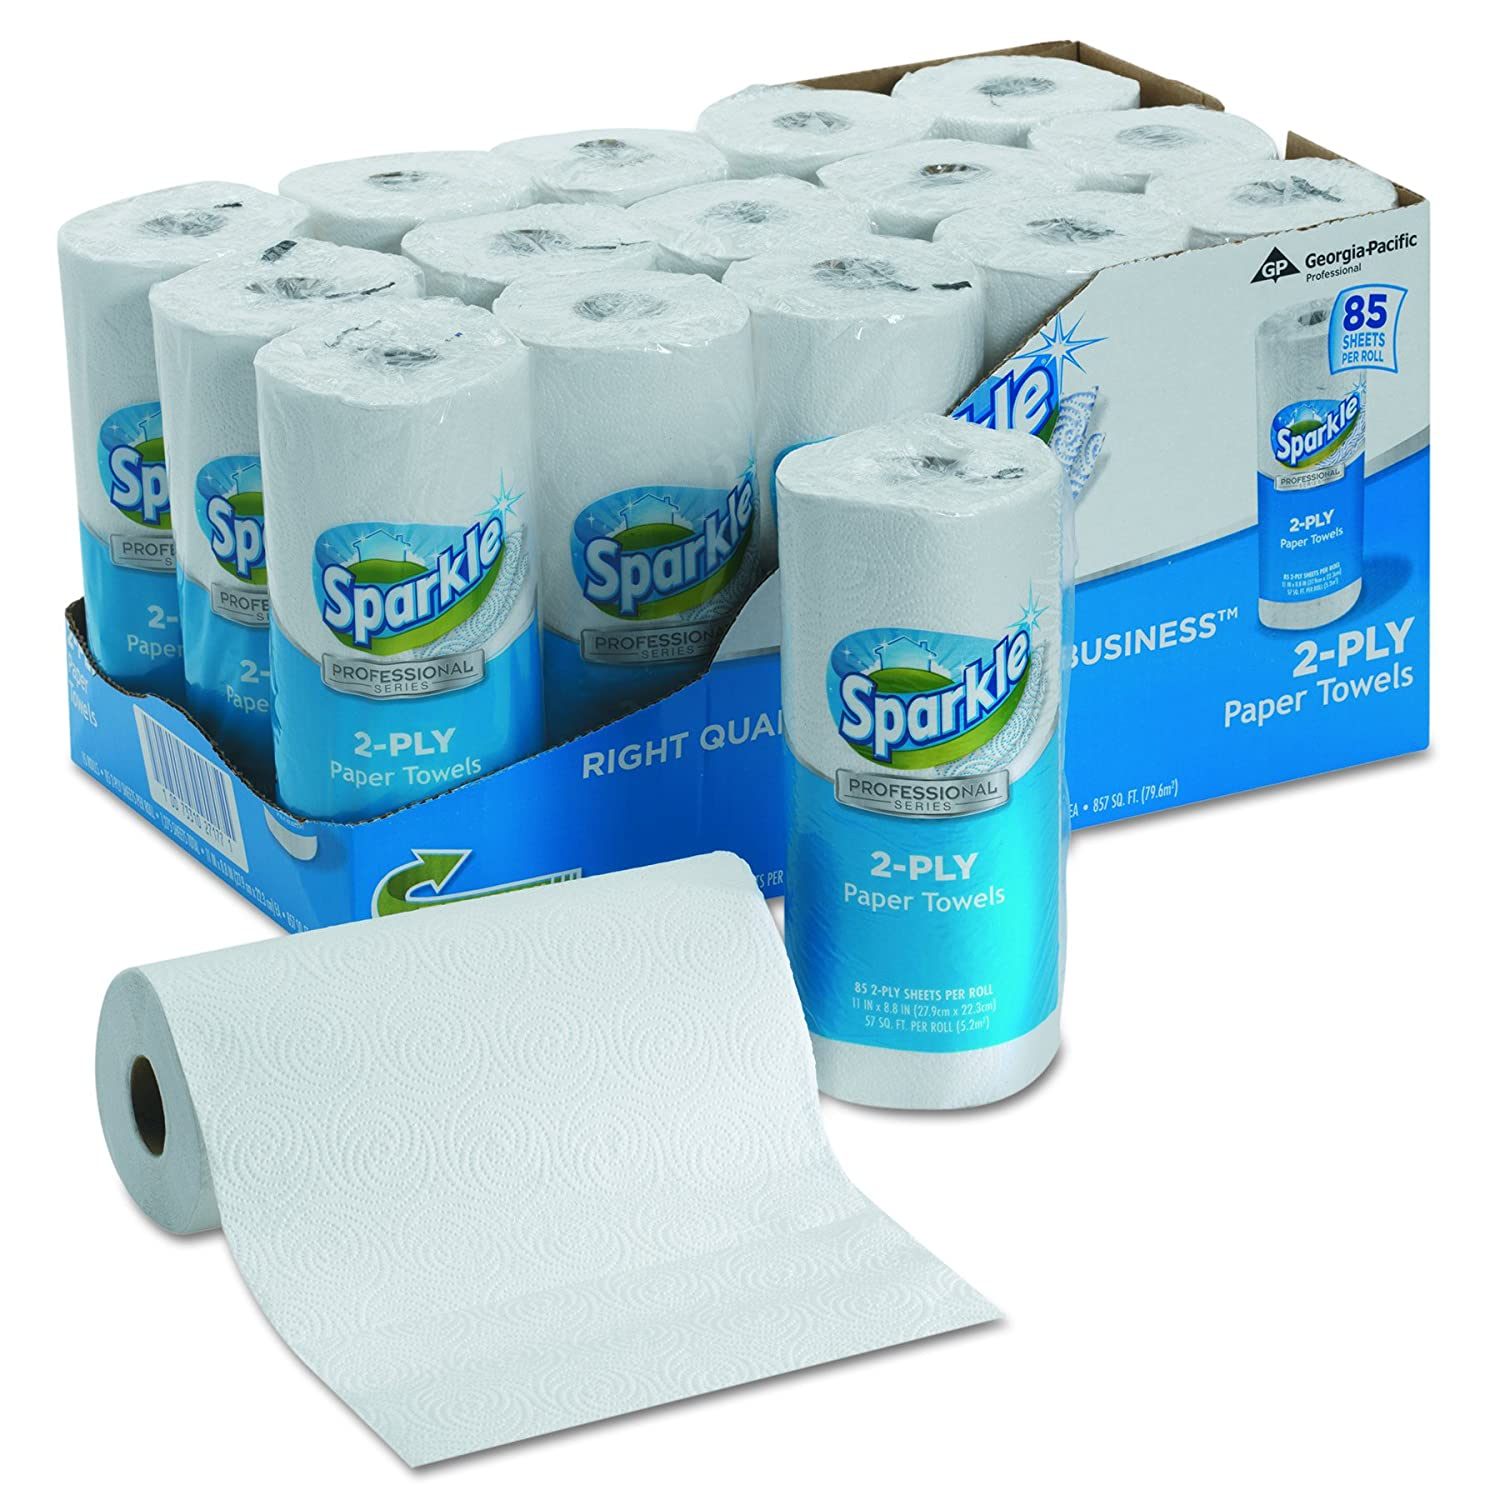 Georgia-Pacific Sparkle 2717714 Perforated Roll Paper Towels (WxL ...